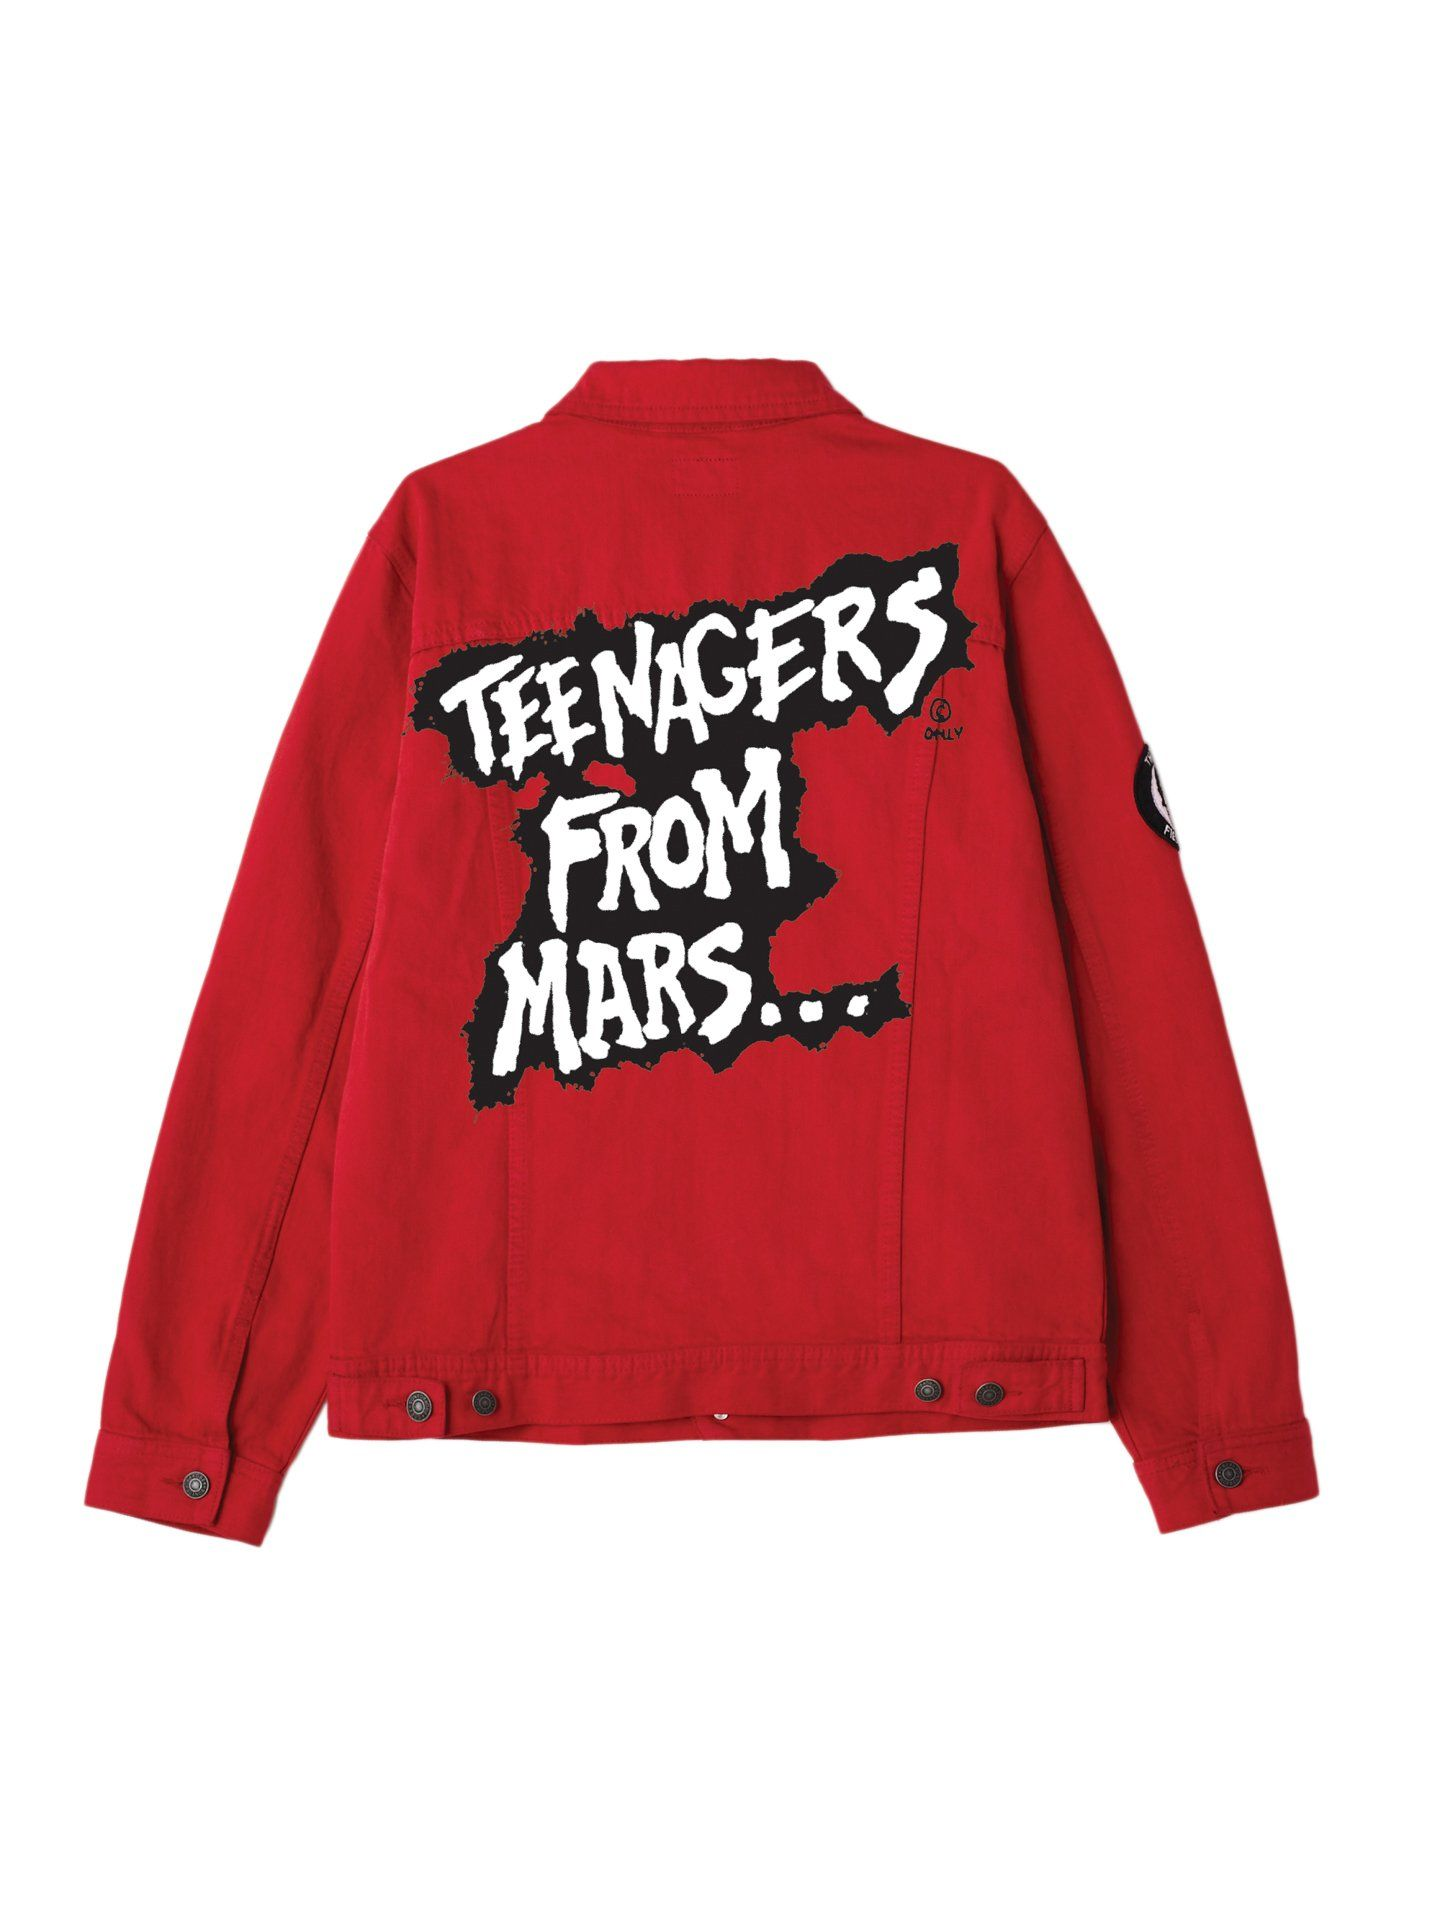 206c13195761 obey x misfits teenagers from mars denim jacket red